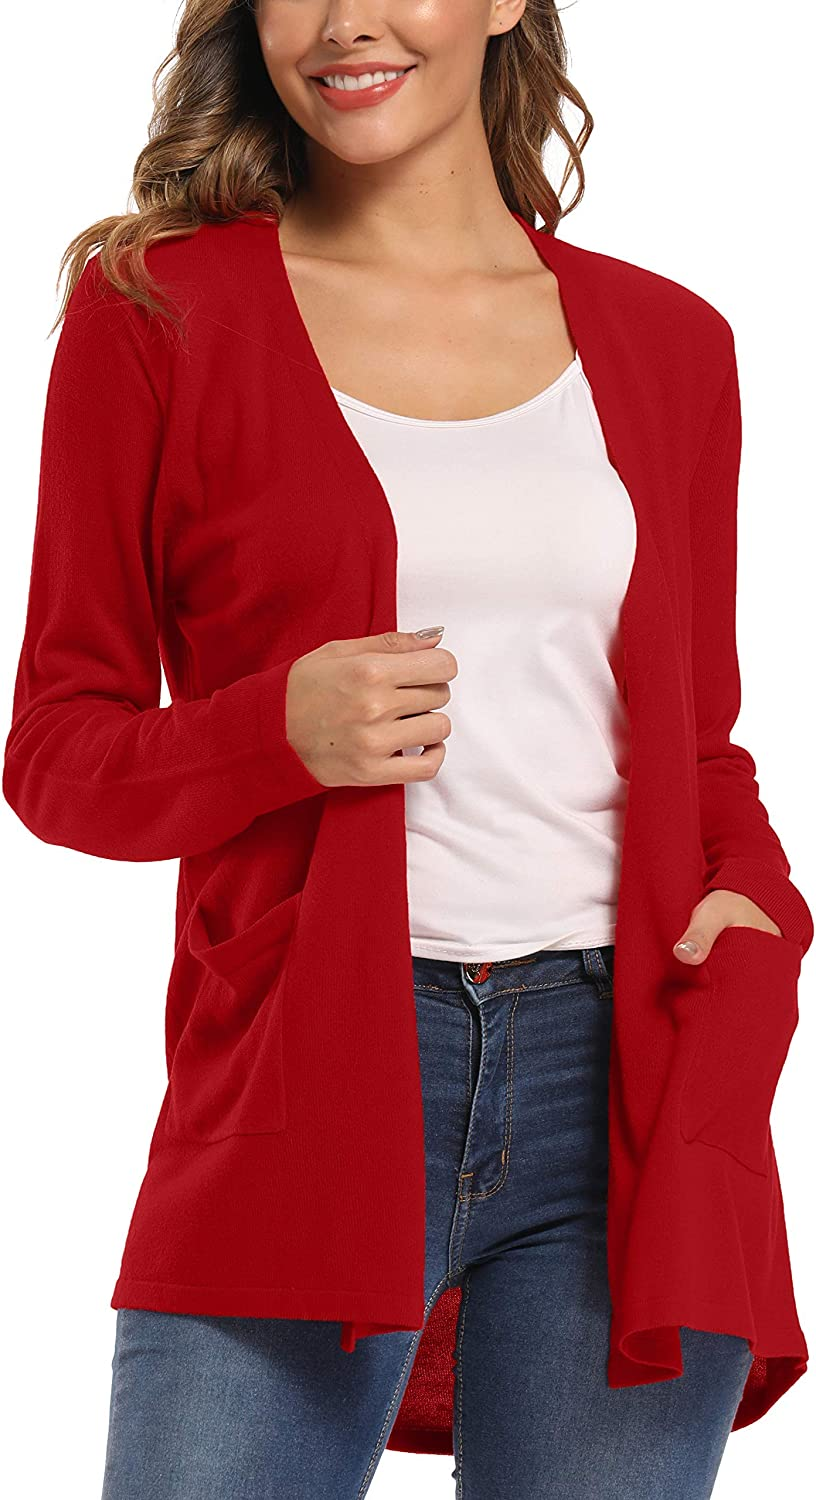 Urban CoCo Women's Long Sleeve Open Front Lightweight Cardigan Sweaters with Pockets